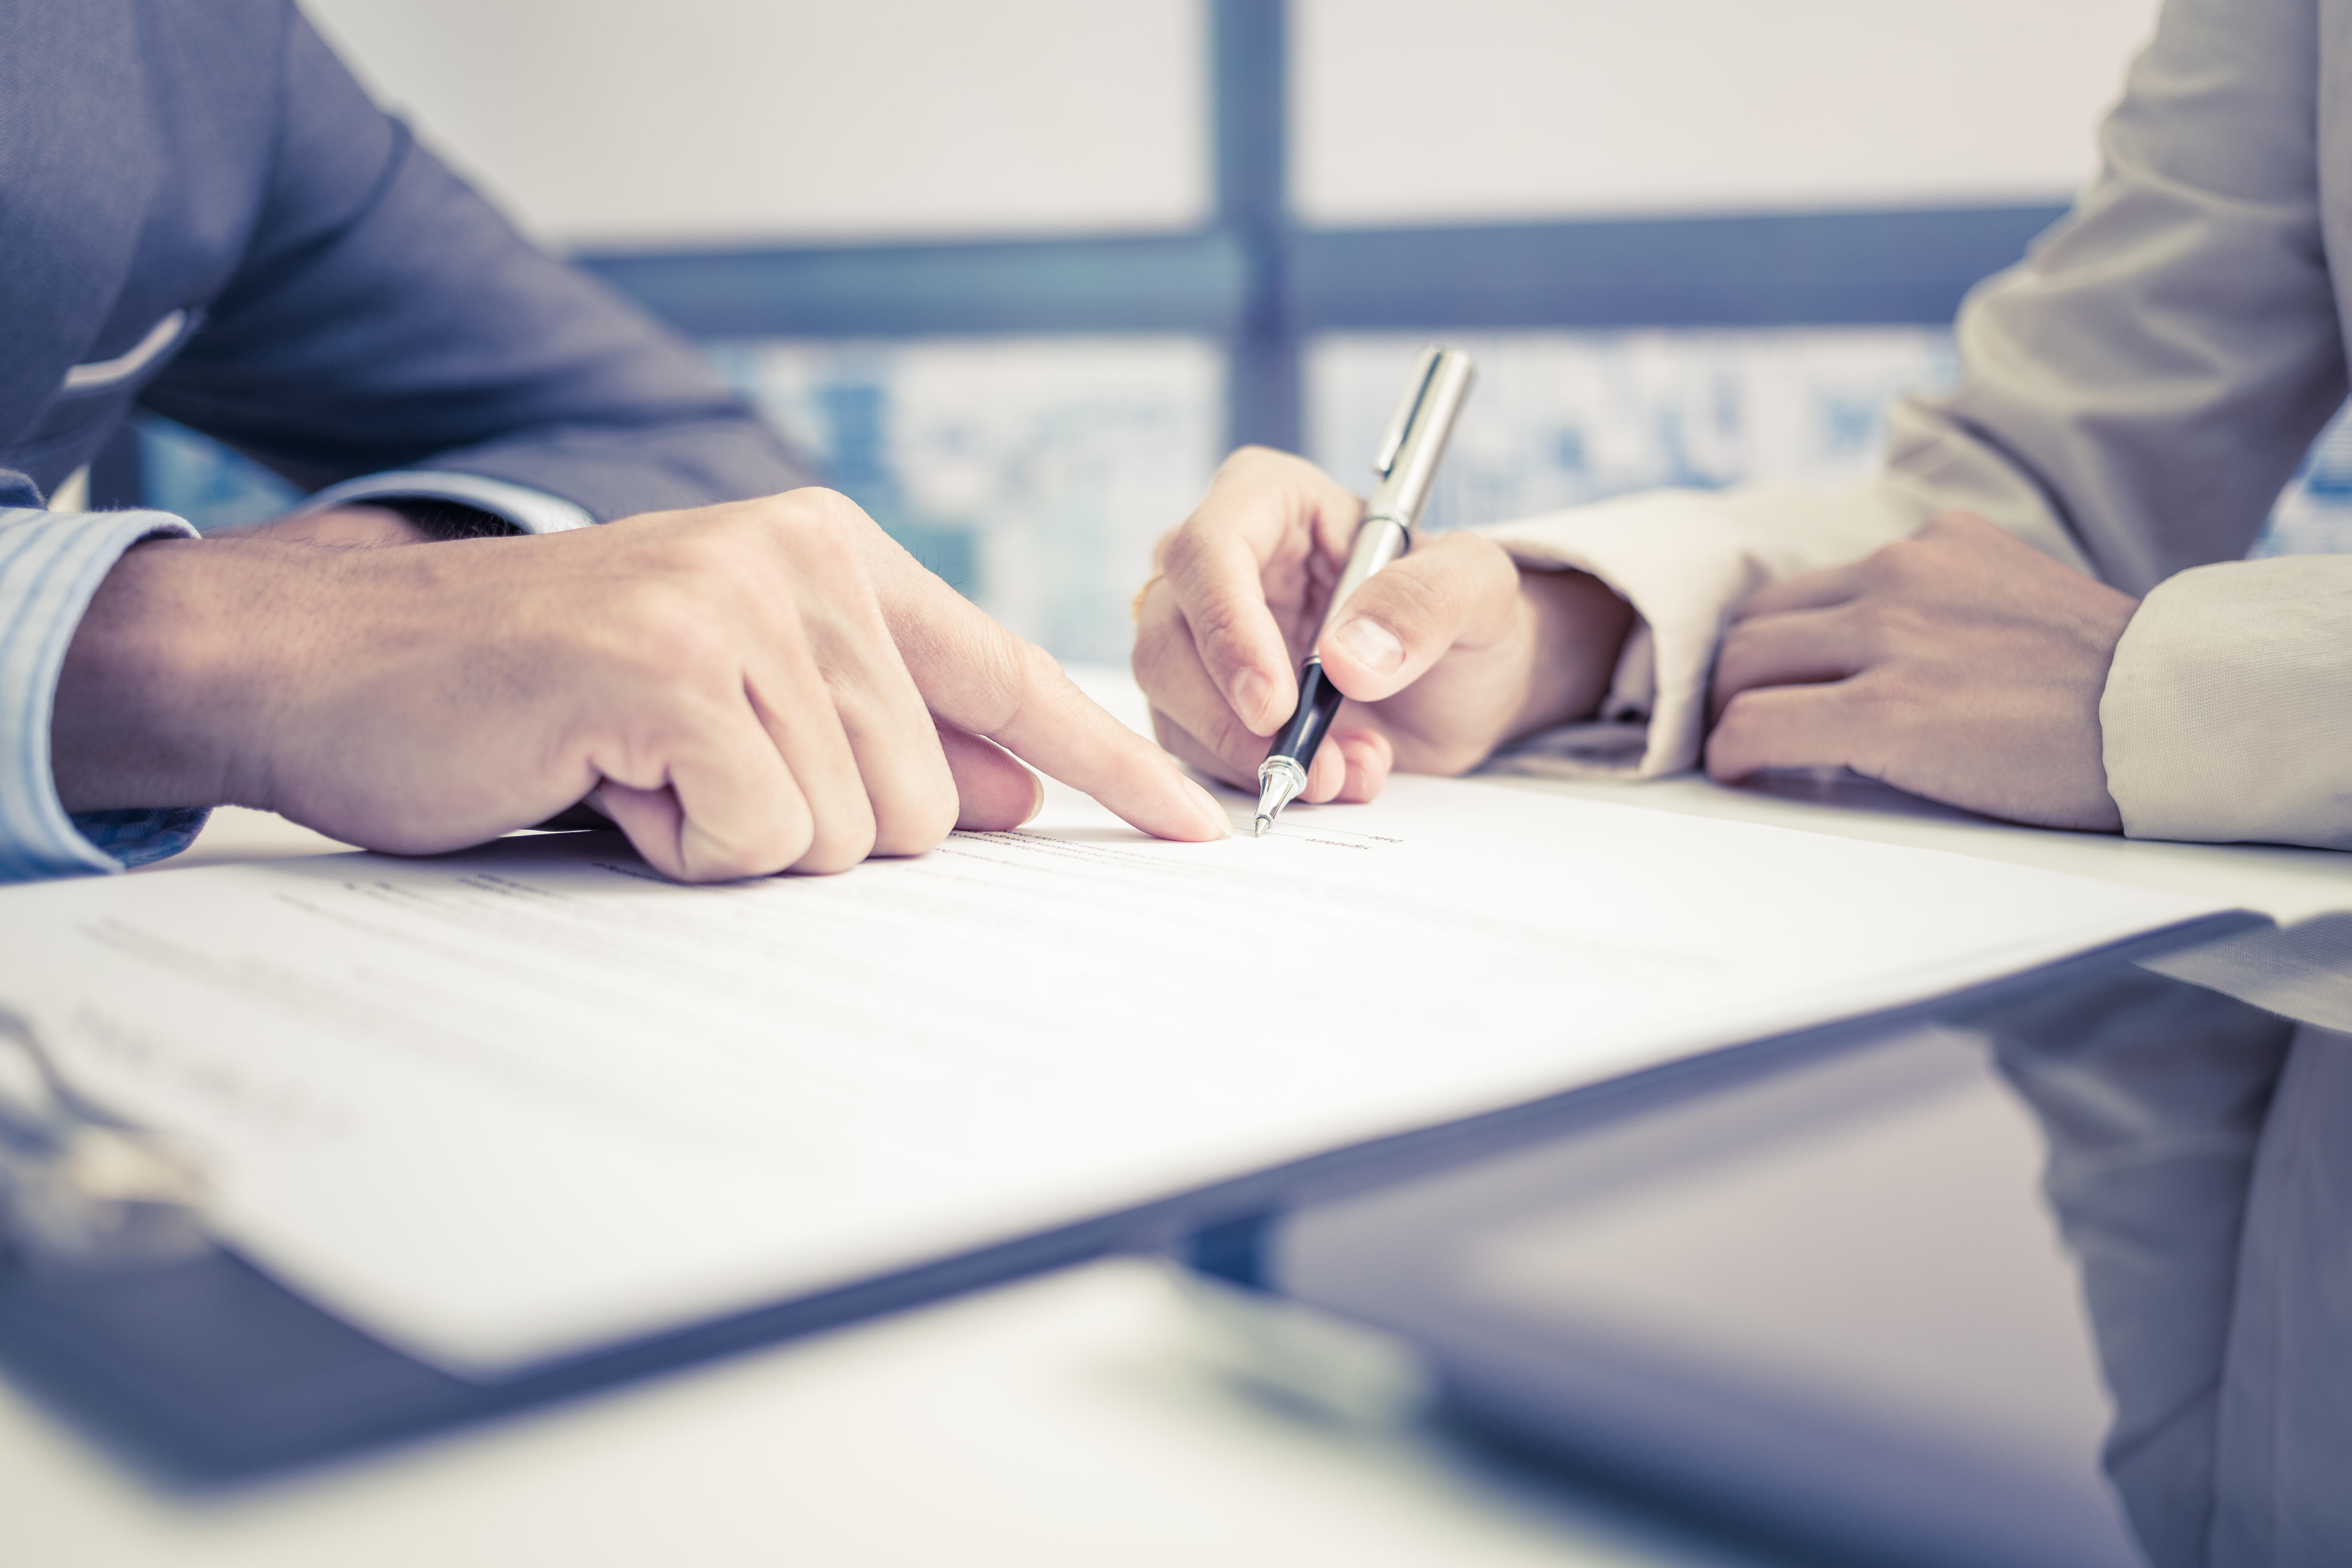 Man's hand pointing at clipboard with document that being signed by woman's hand holding pen